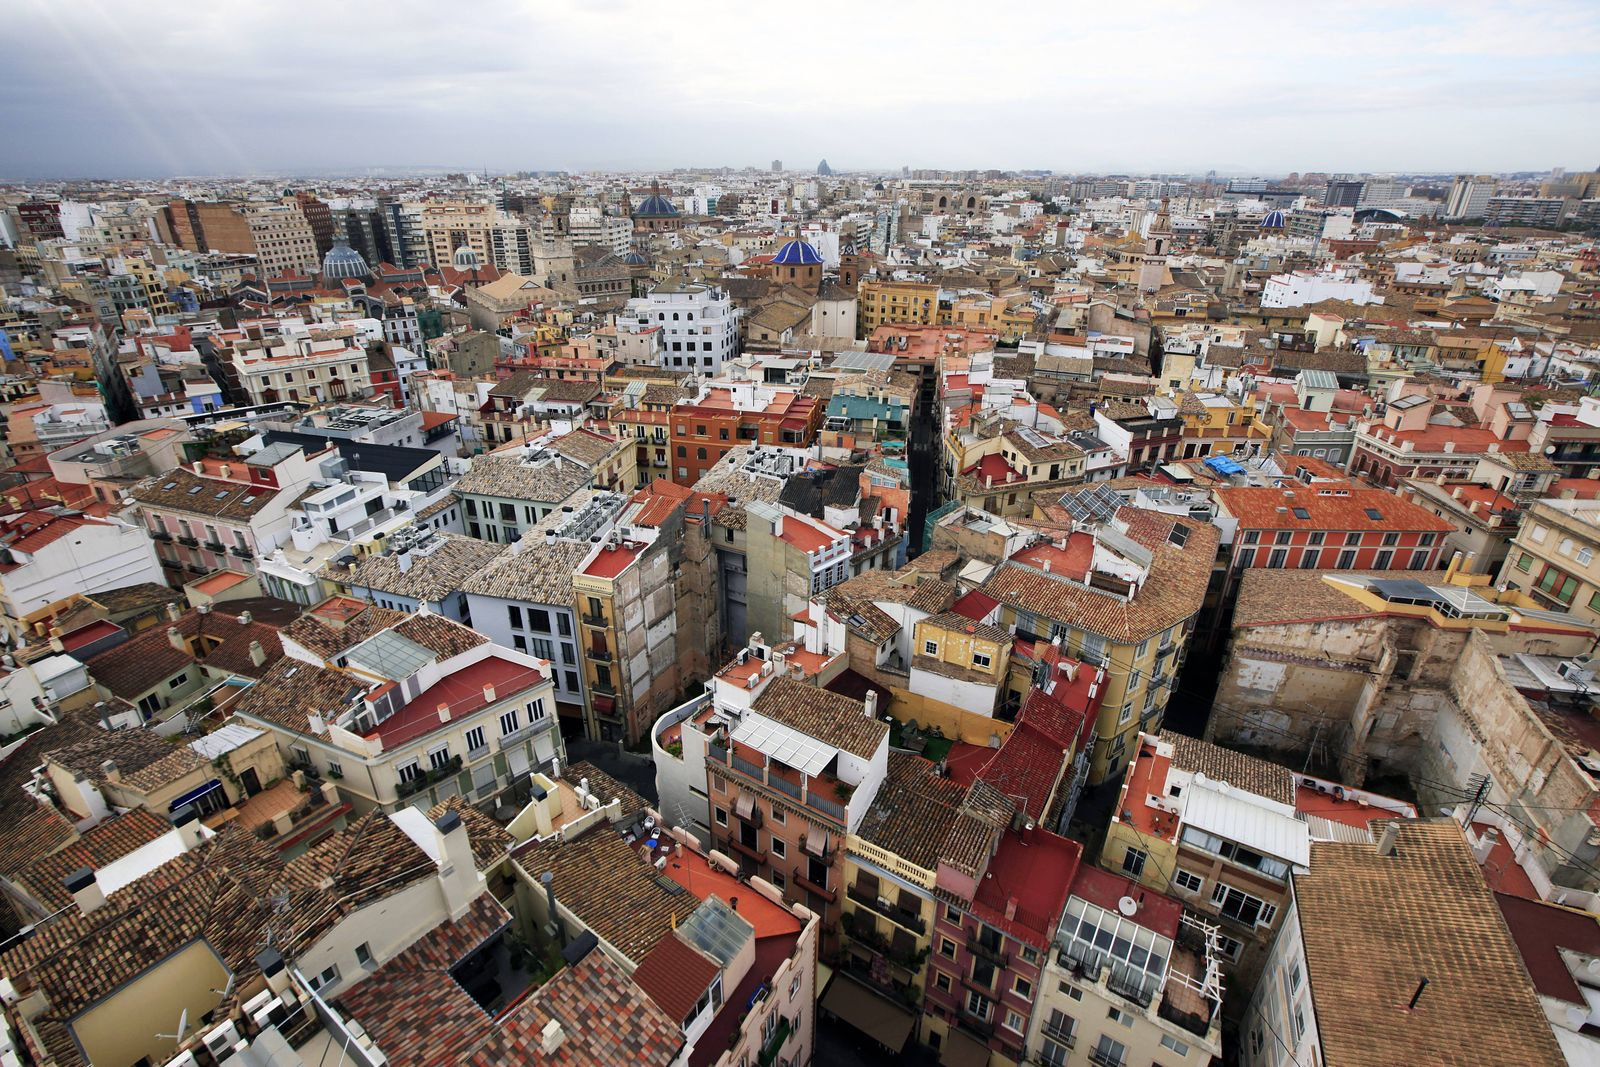 Central Valencia from the tower of the Metropolitan Cathedral Basilica of the Assumption of Our Lady